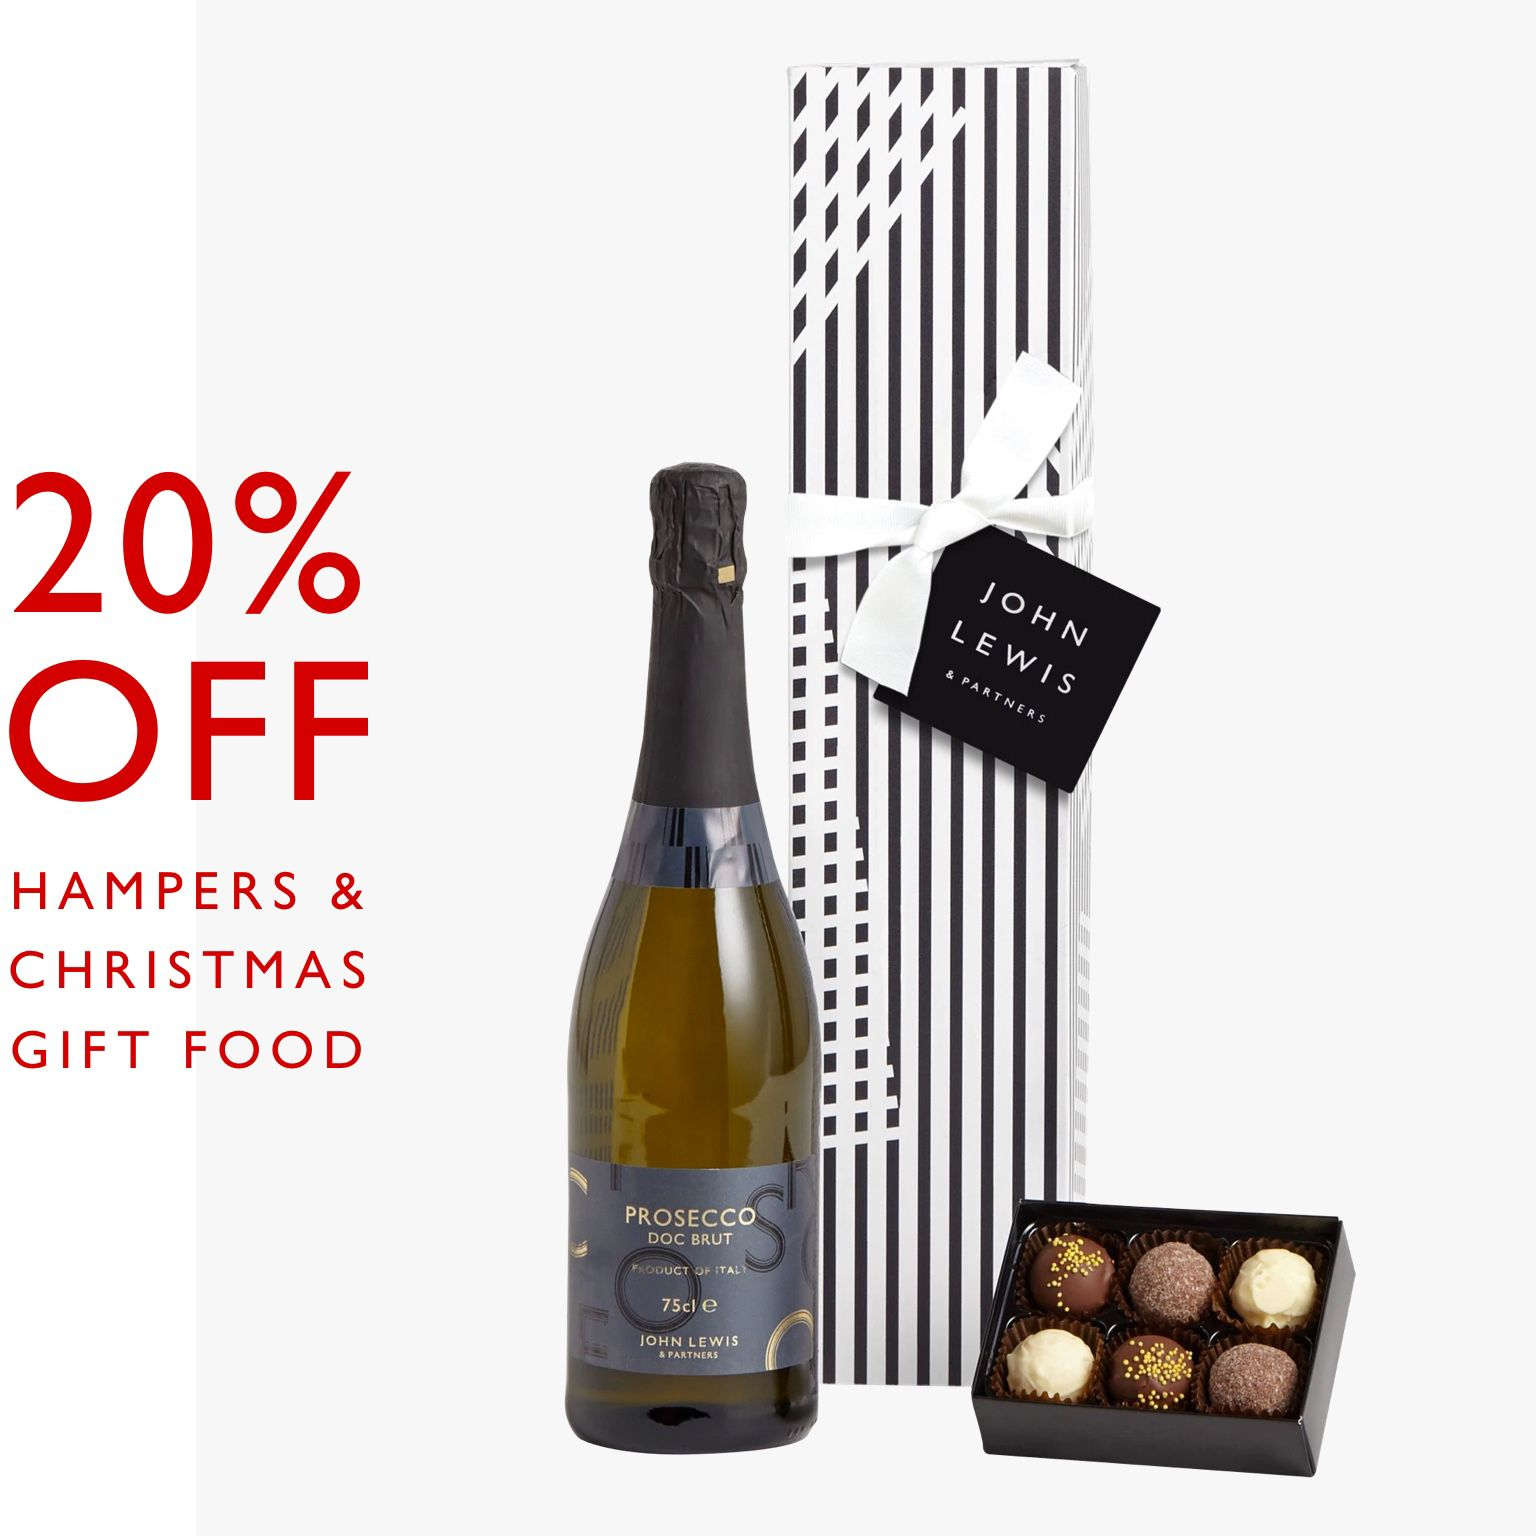 20% off Hampers & Christmas Gift Food